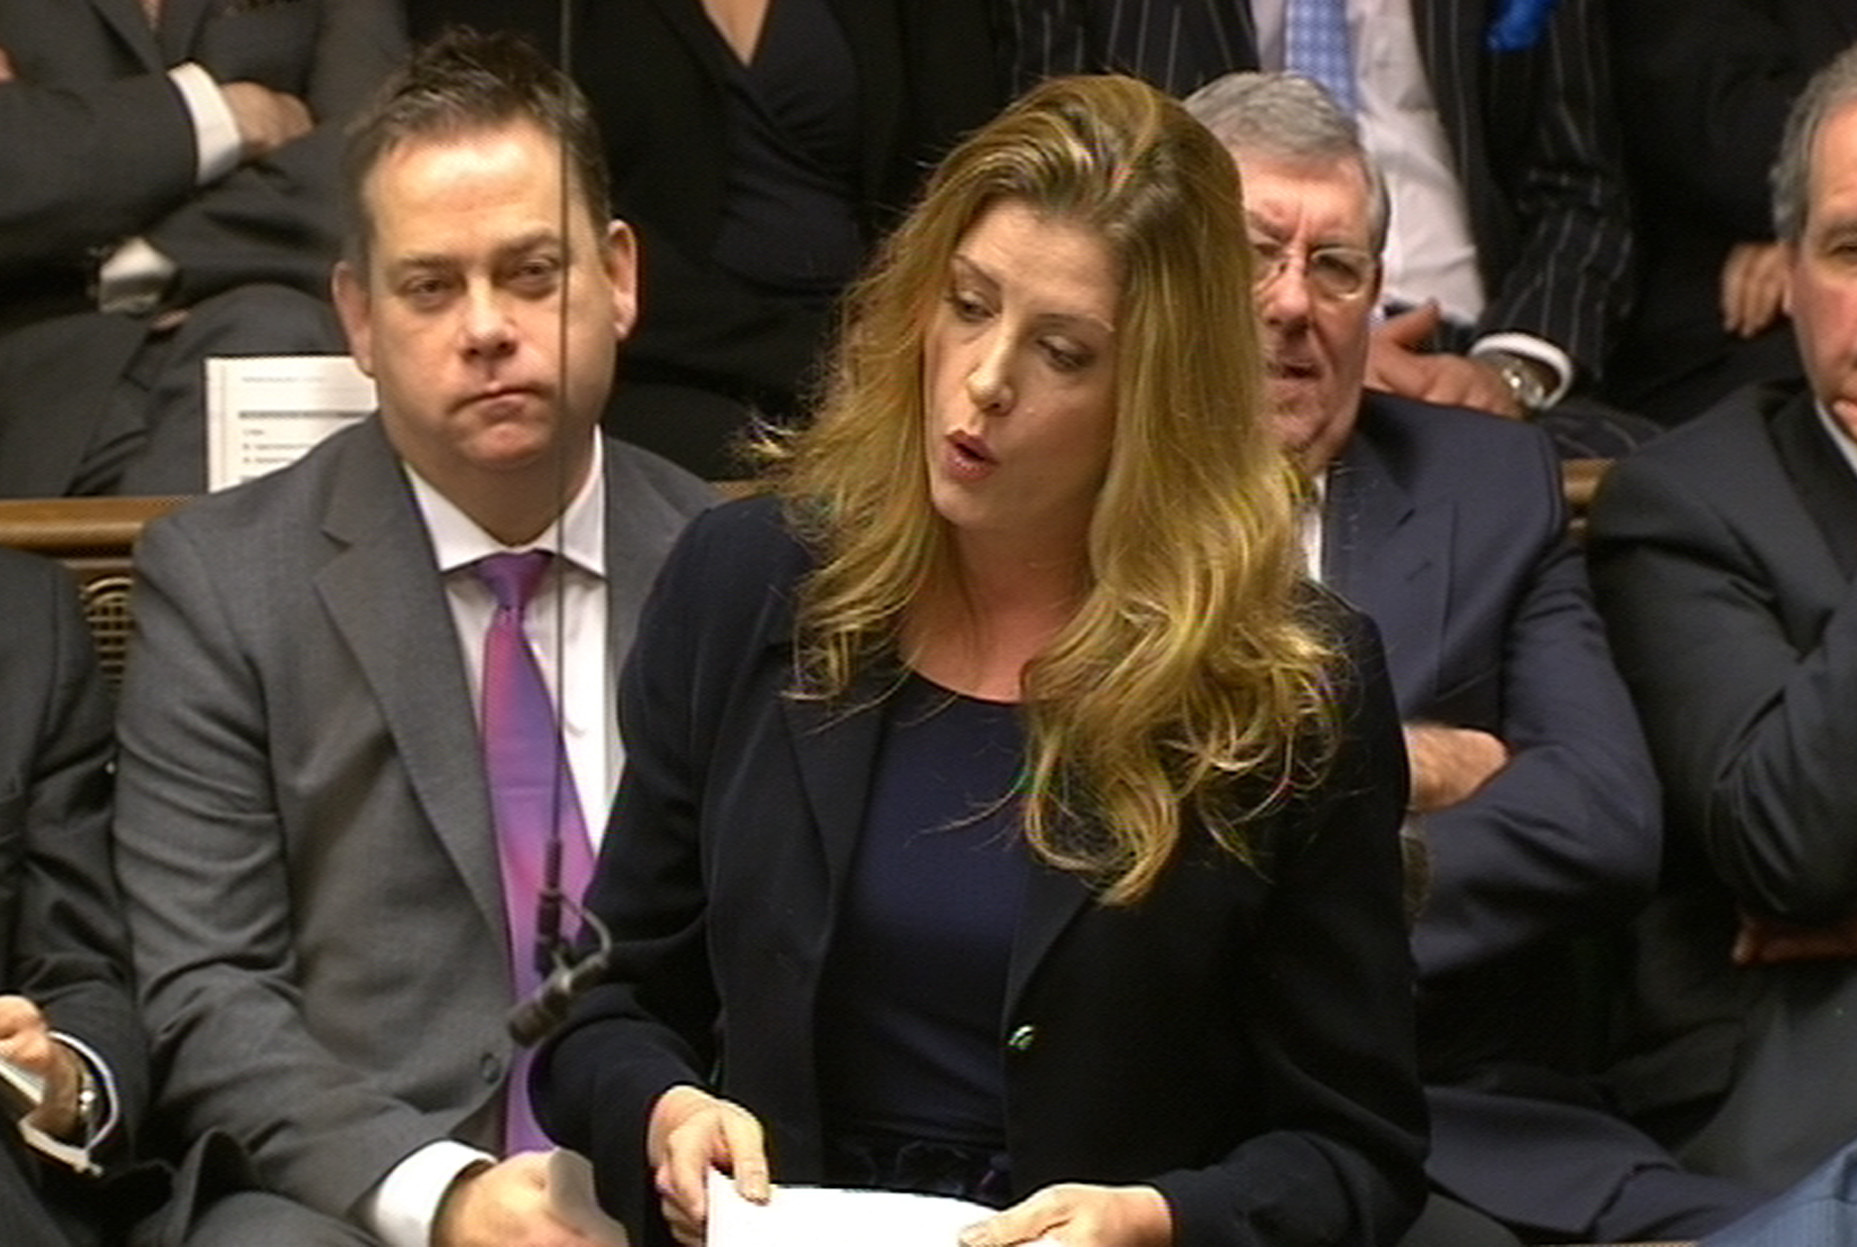 Penny Mordaunt in Parliament